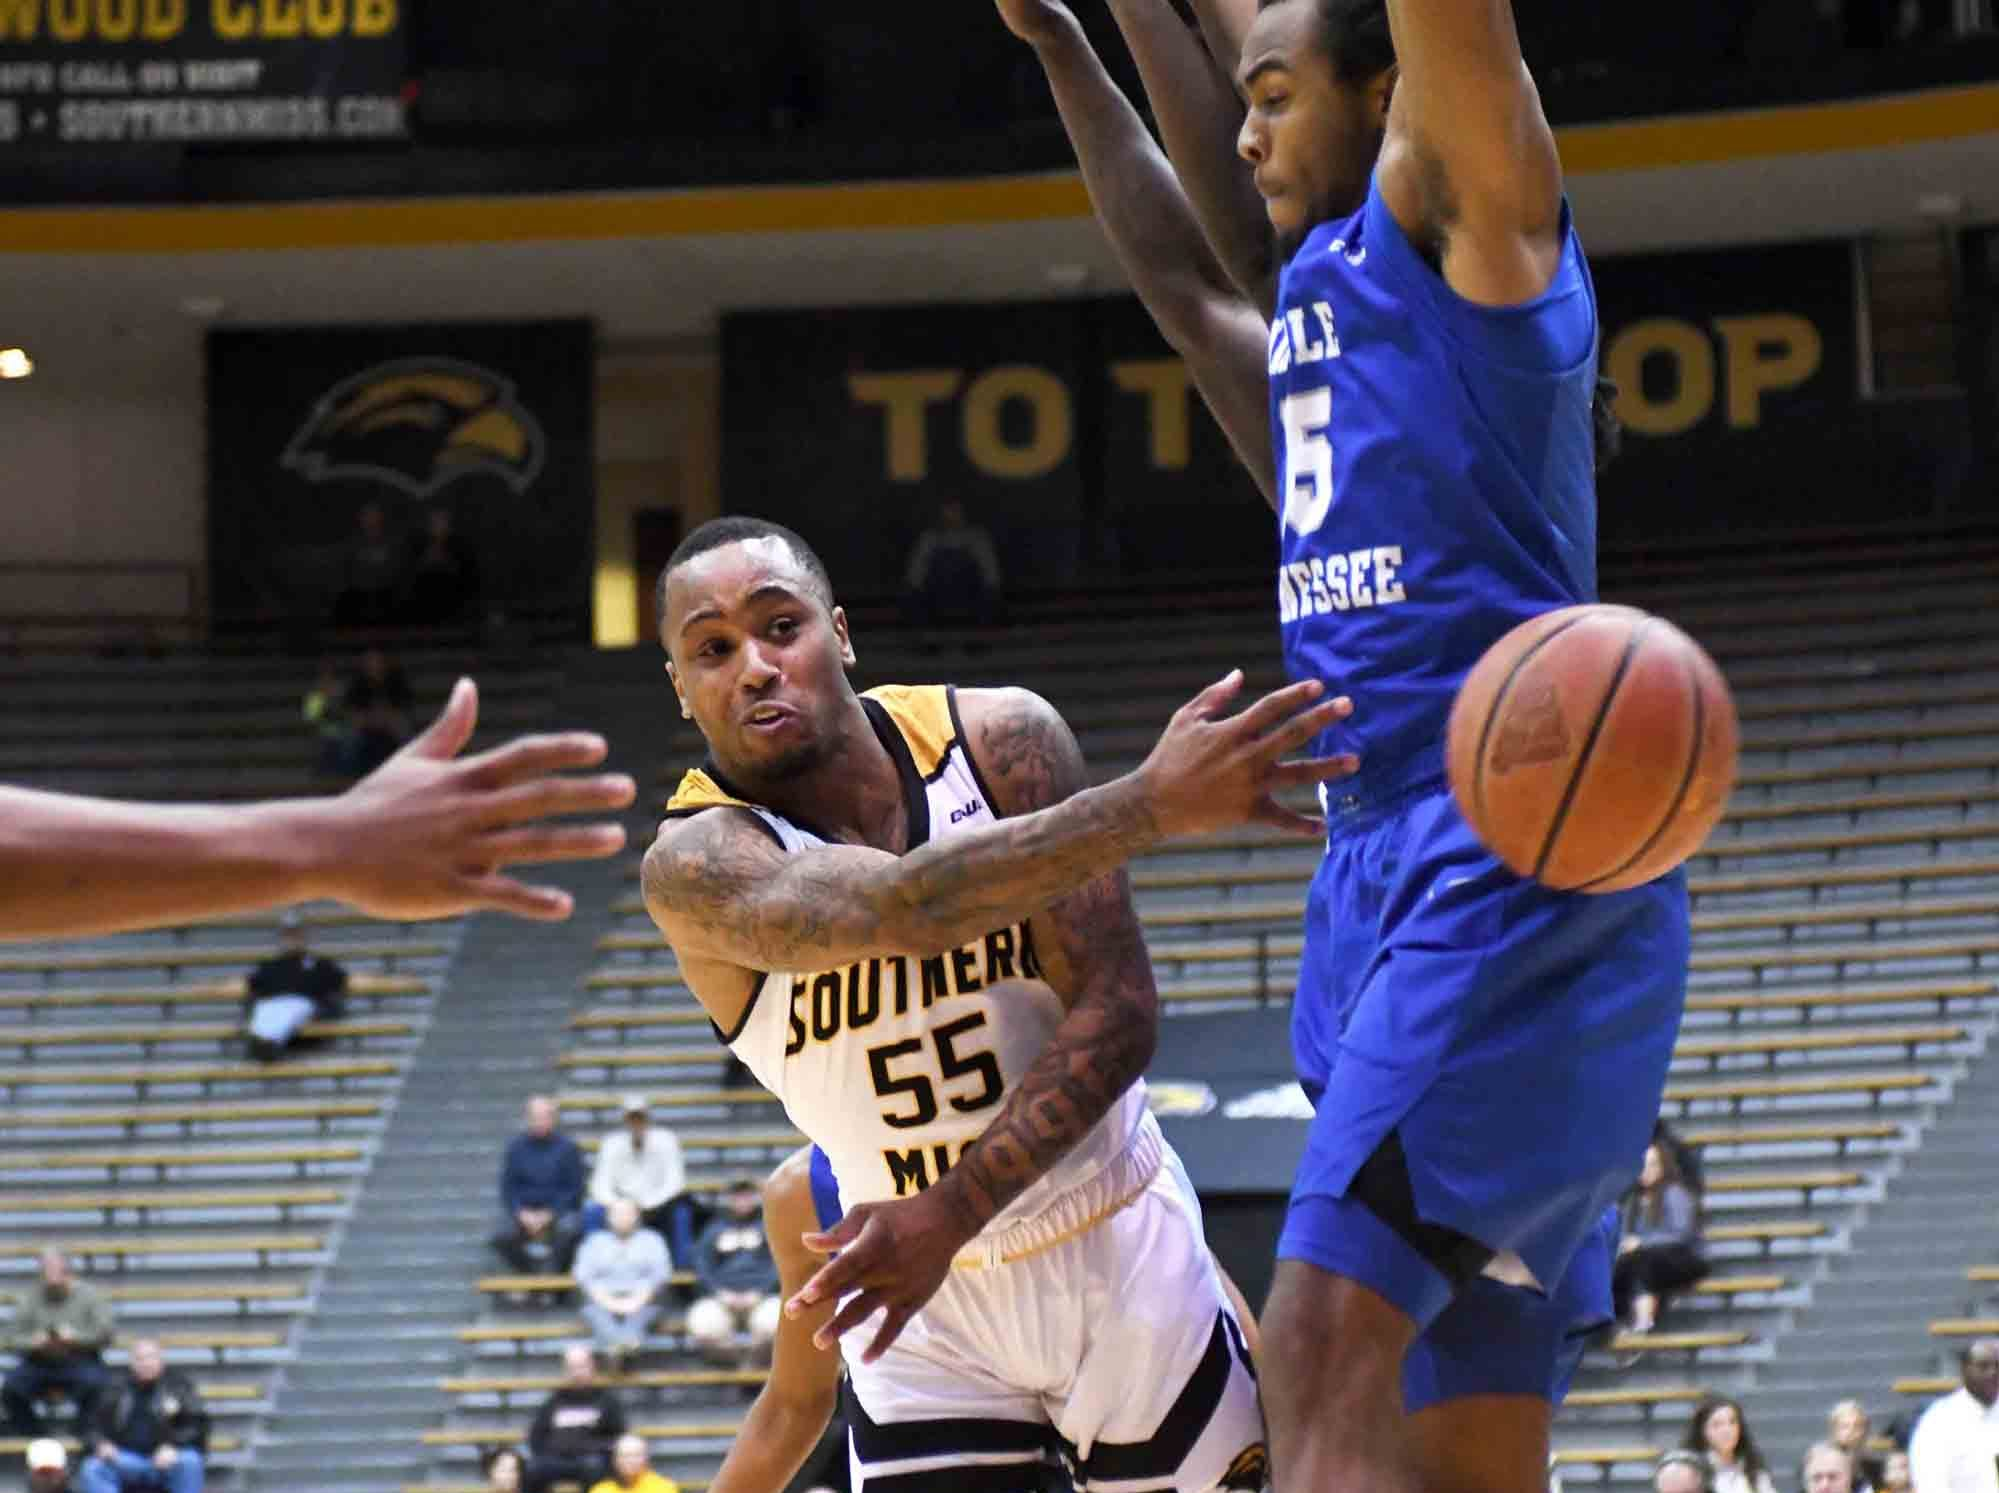 Southern Miss guard Tyree Griffin passes the ball in a  game against Middle Tennessee in Reed Green Coliseum on Thursday, January 10, 2019.